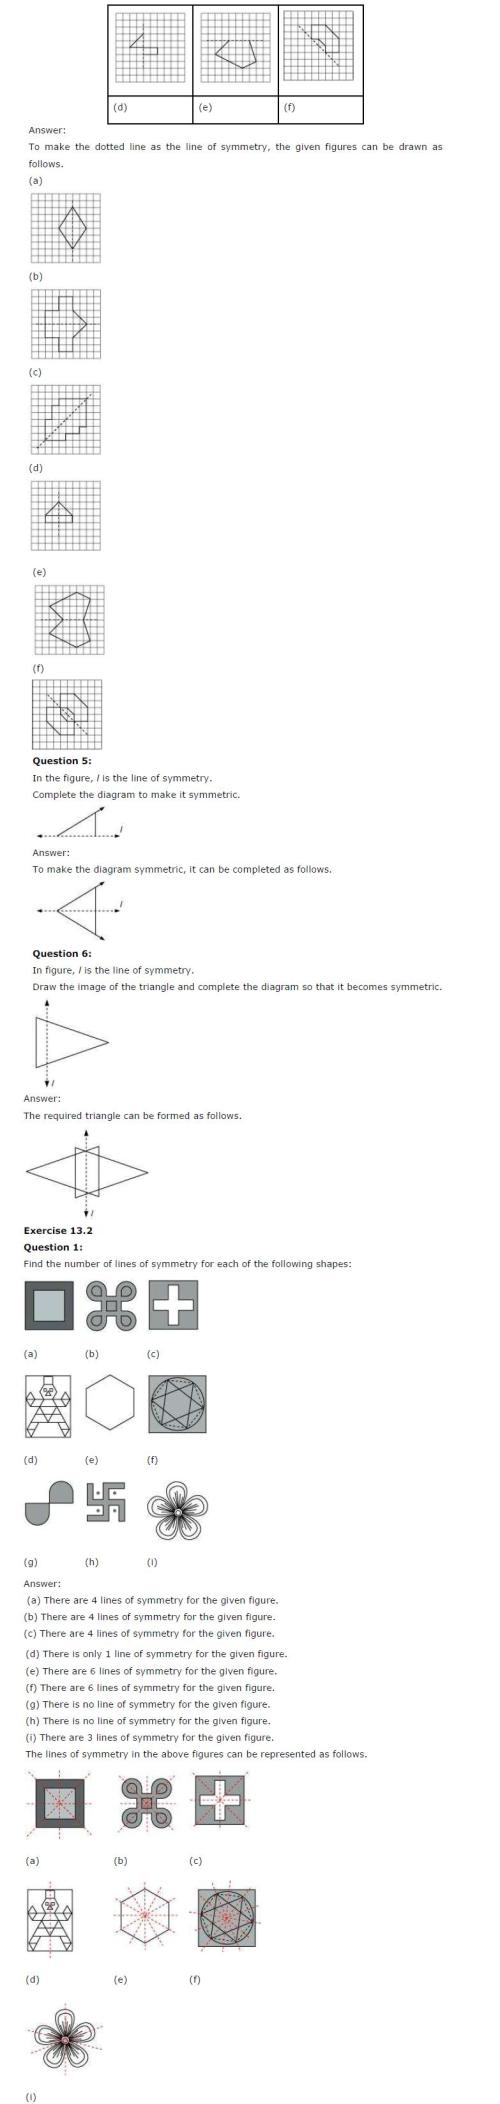 small resolution of Algebra Worksheets For Grade 6 Cbse maths integers worksheets for grade 6  adding using math - Easy Math